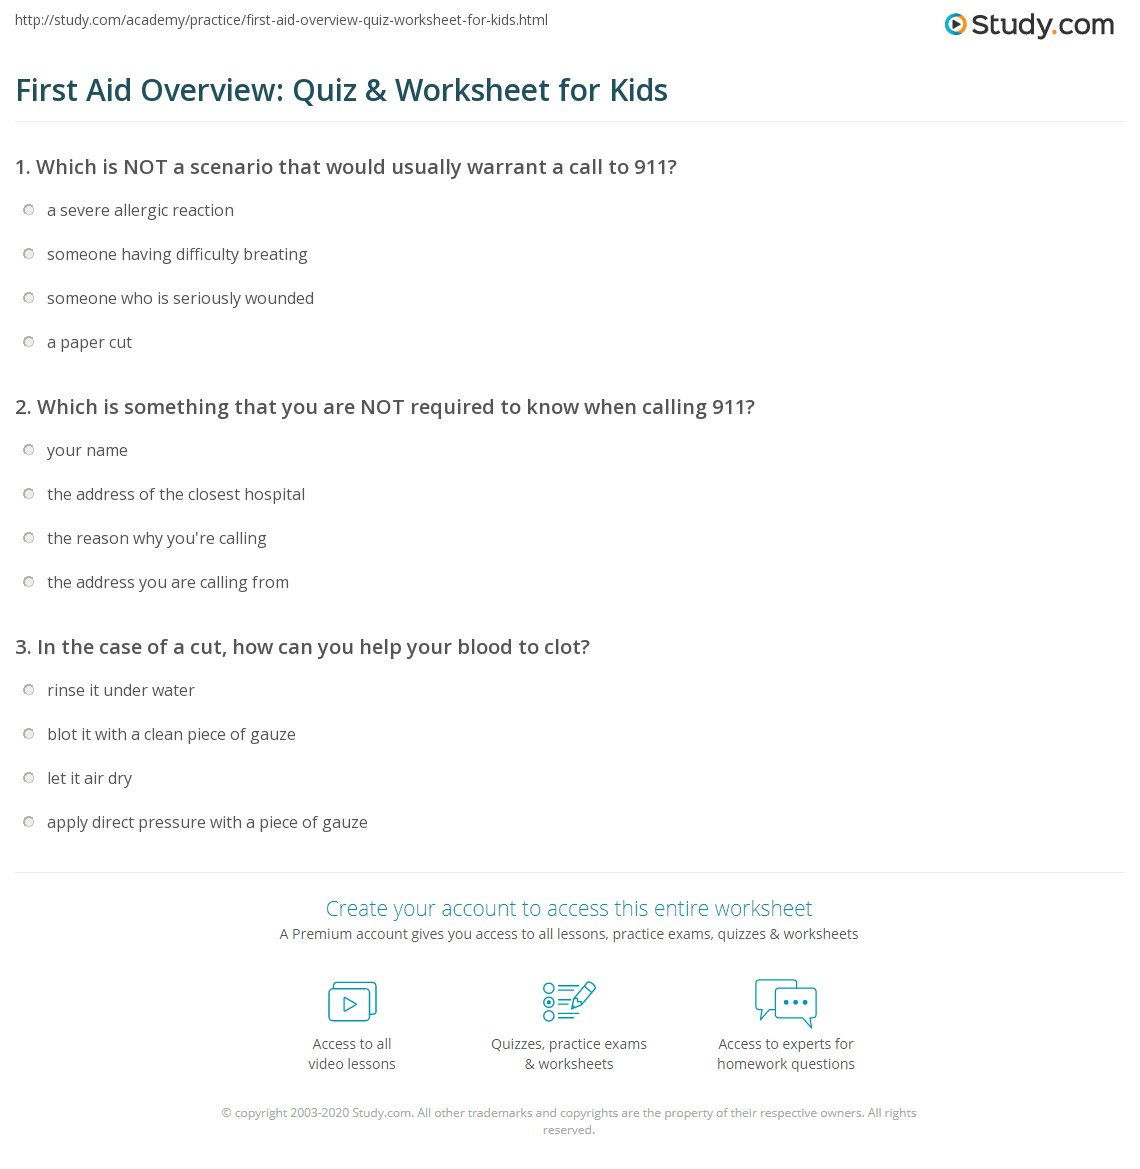 Worksheets First Aid Worksheets For Kids first aid overview quiz worksheet for kids study com print lesson facts tips safety worksheet